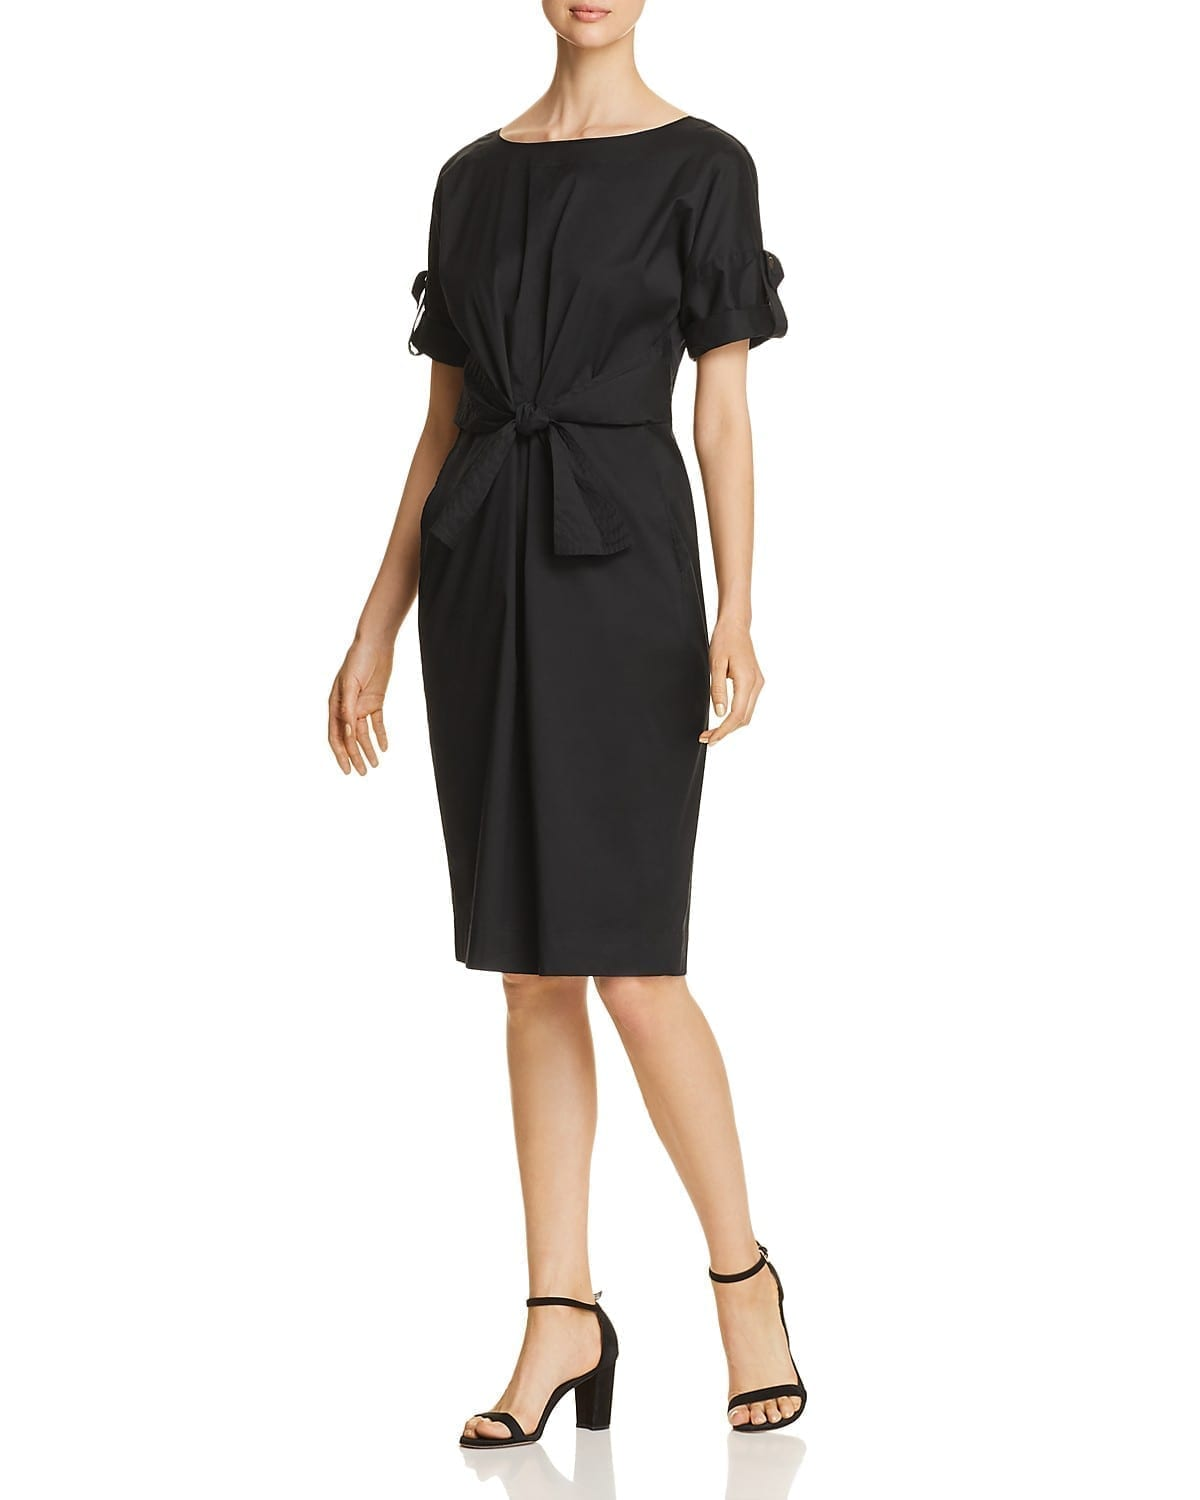 Donna Karan New York Ruched Tie Front Black Dress